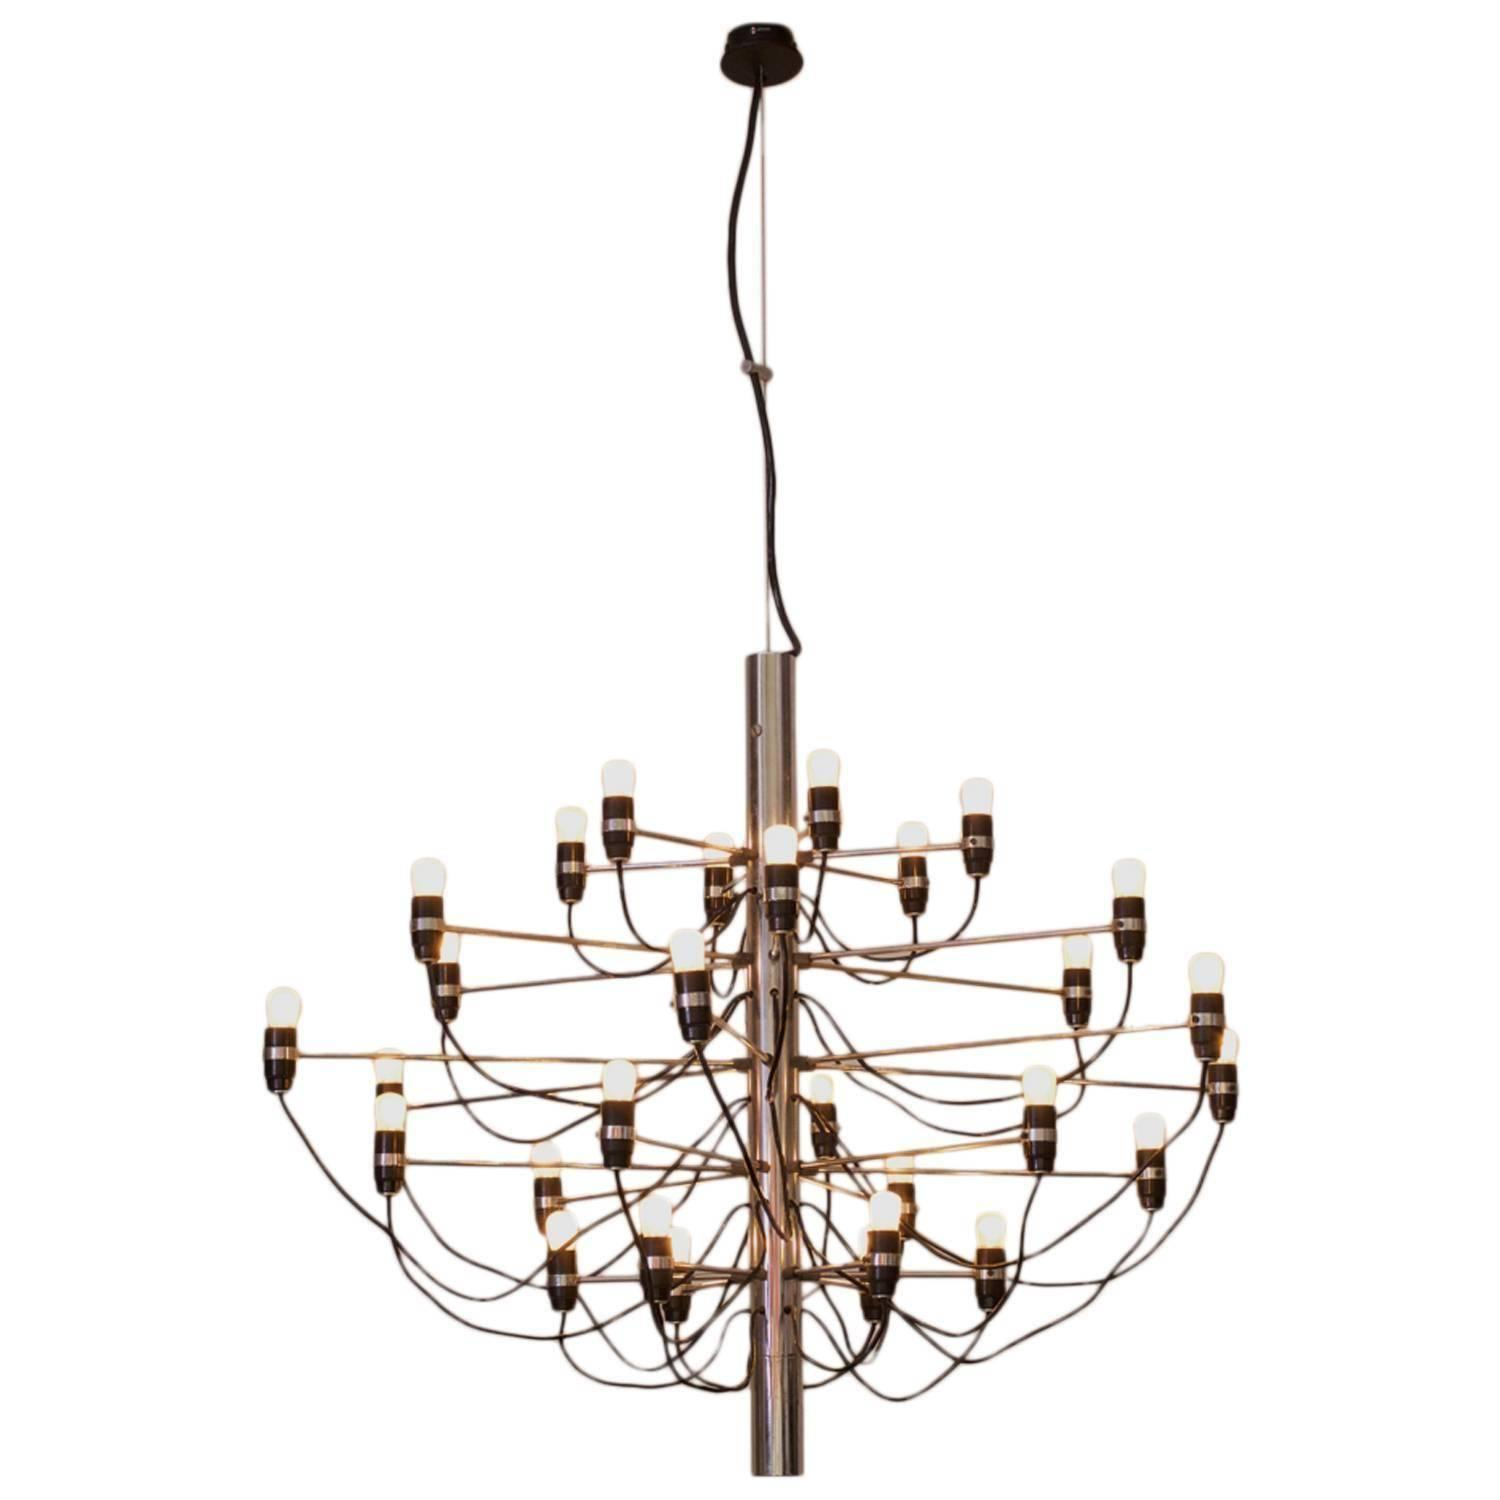 Early 2097 30 Chandelier by Gino Sarfatti for Arteluce For Sale at